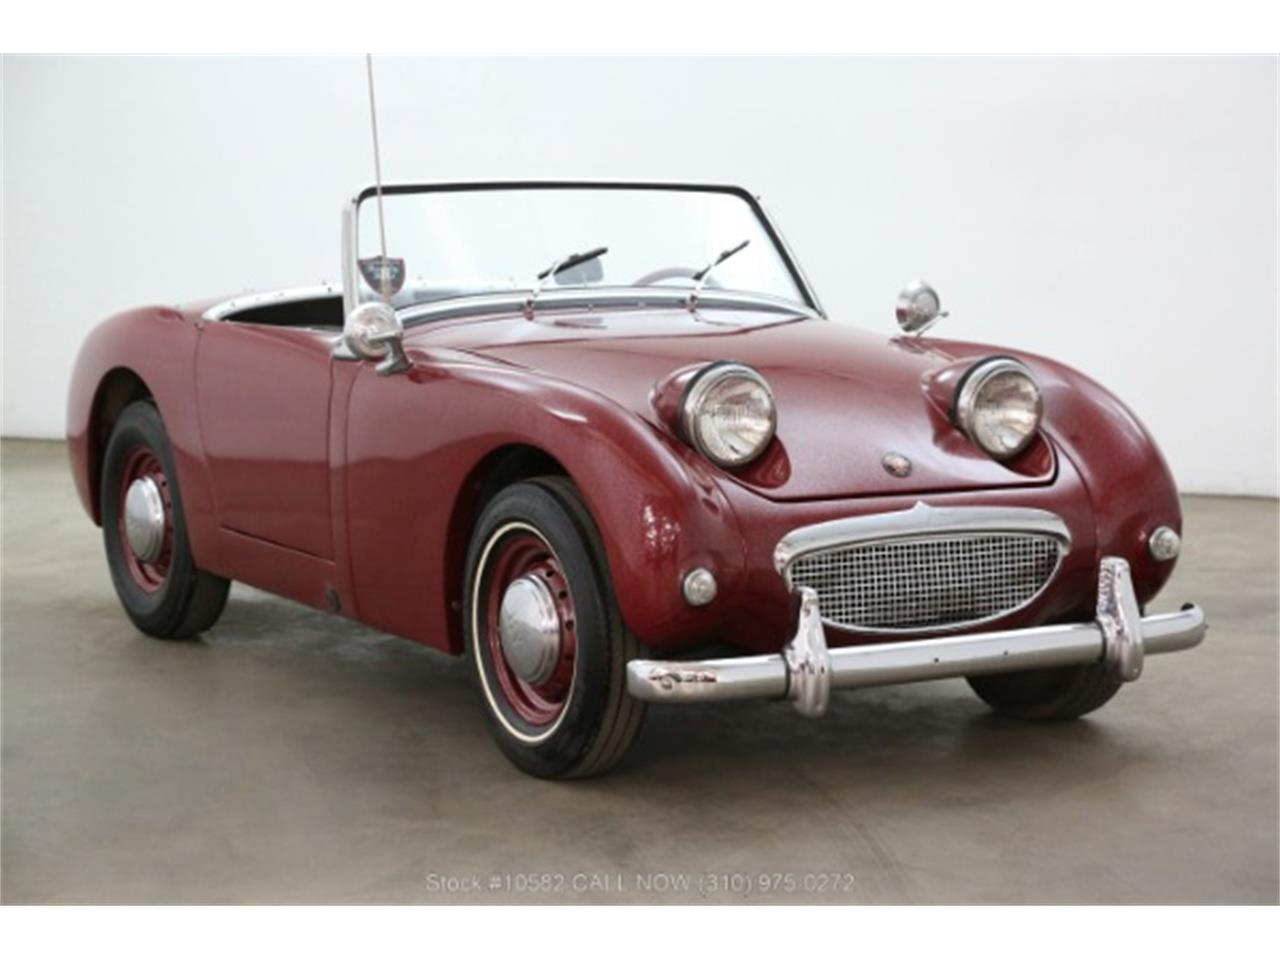 Large Picture of '60 Austin-Healey Bugeye Sprite - $9,750.00 - PKL4